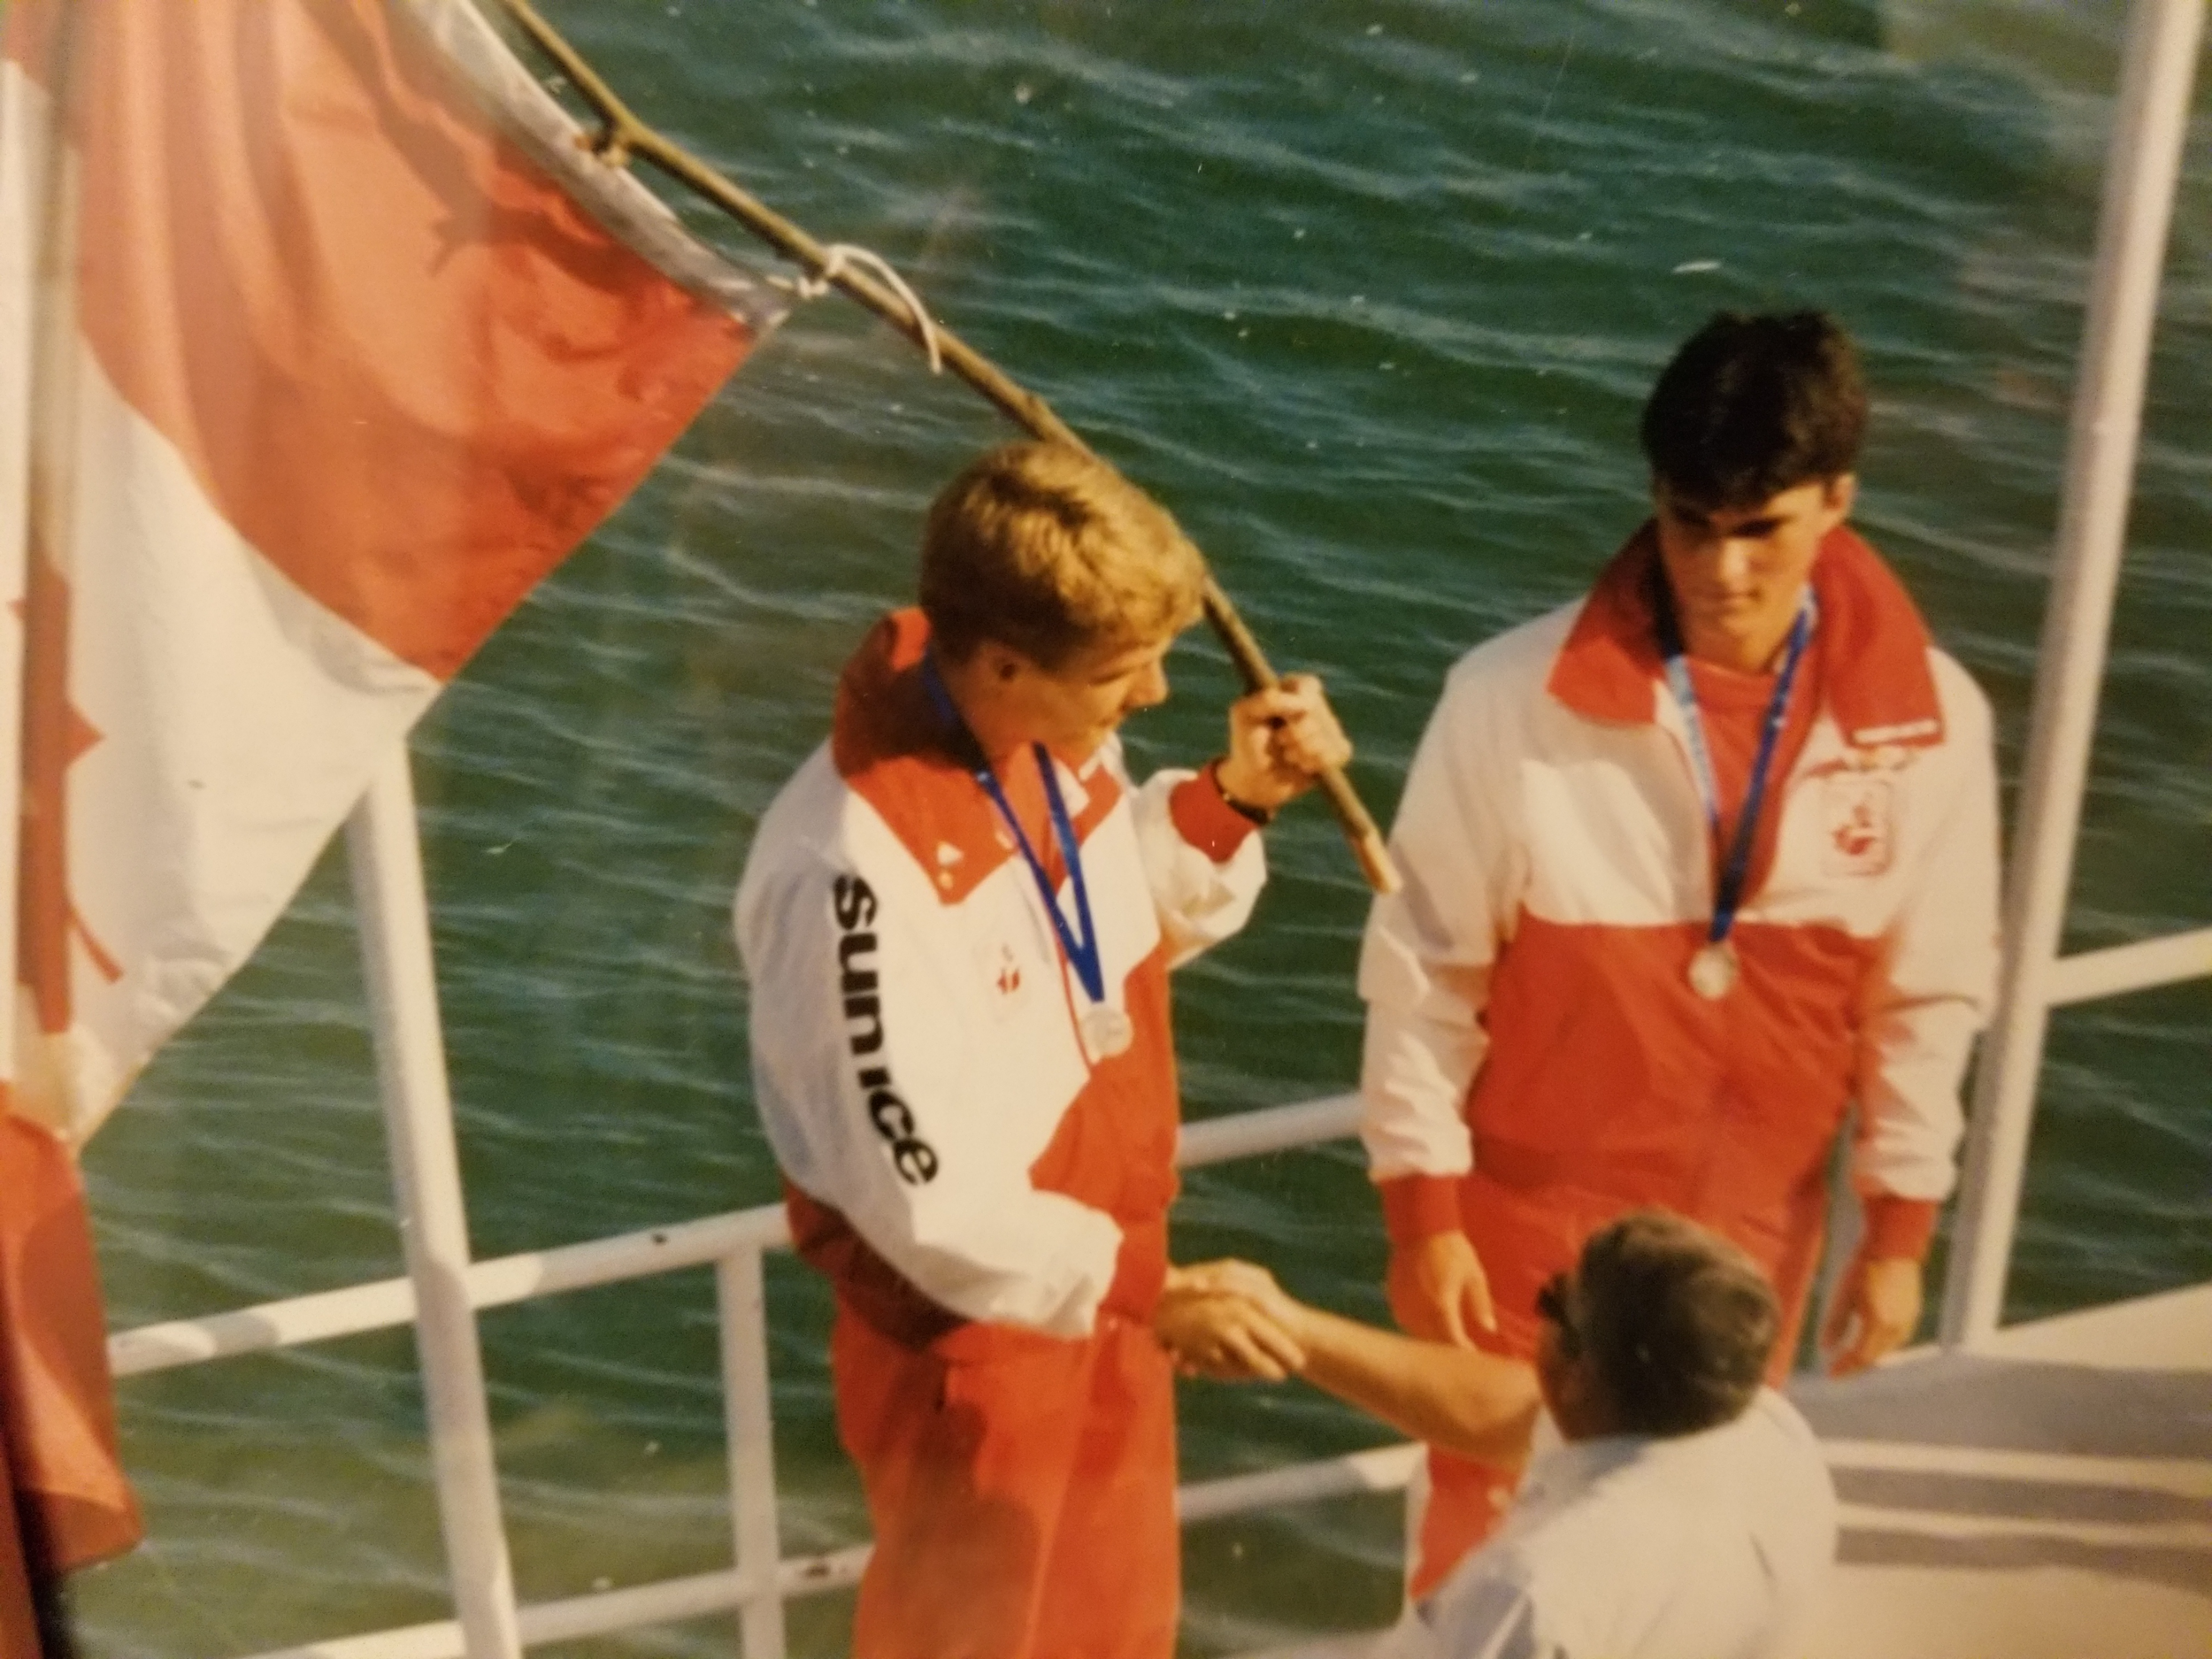 1988  European Junior Championships in Ovieto Spai n, where Glen Girard (right) won  (silver/bronze)  in C-2 with Dan Howe (left) of North Bay.